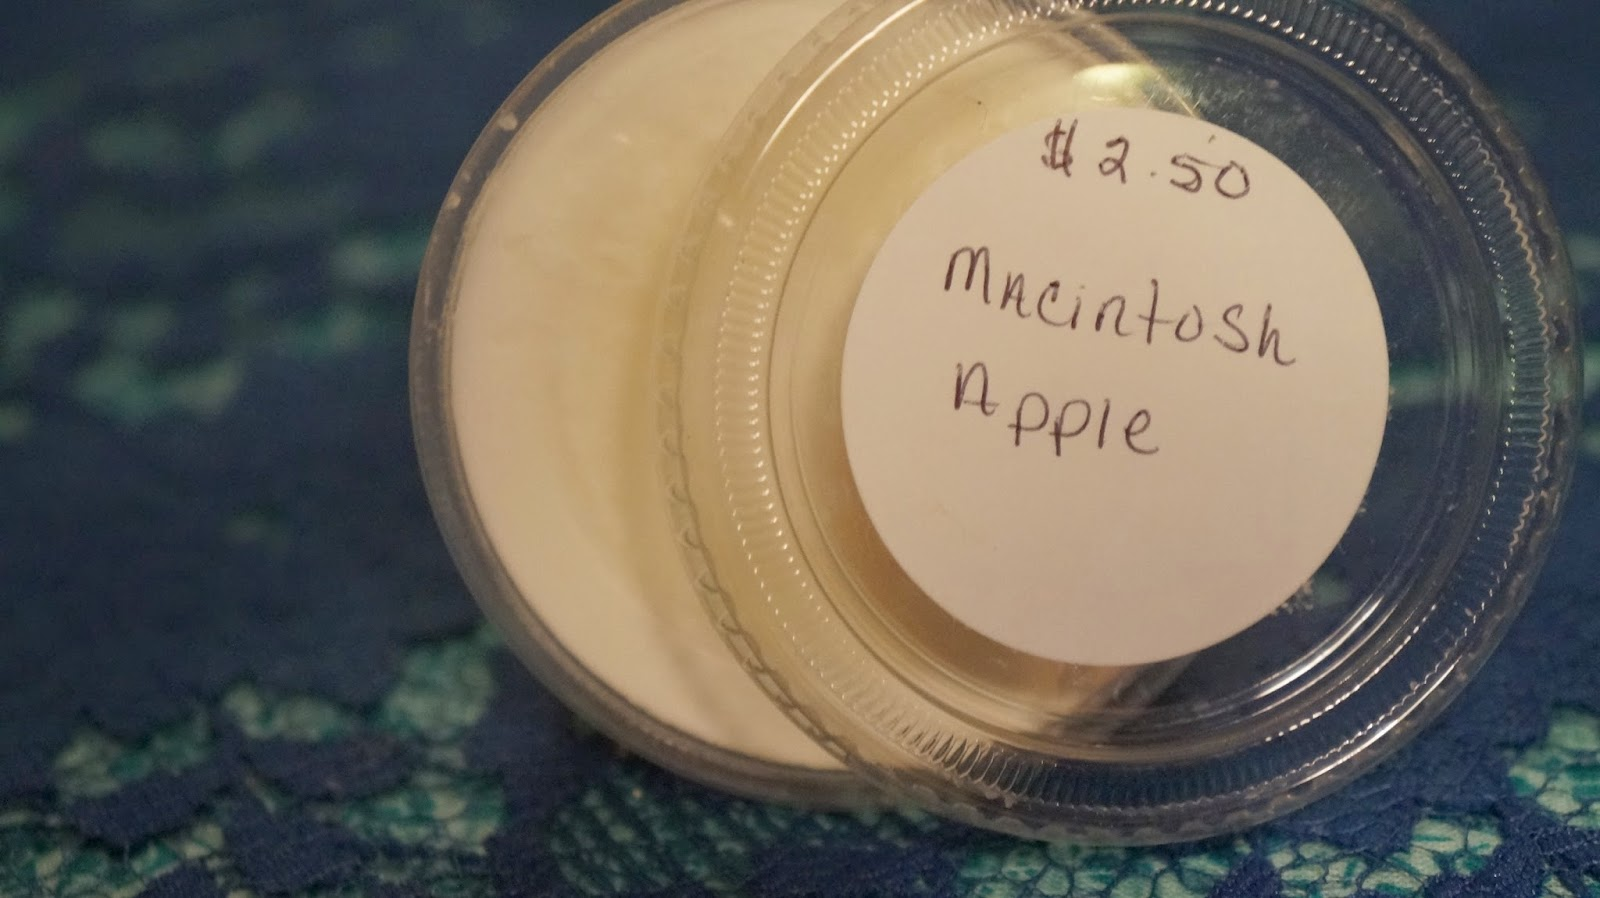 Macintosh Apple wax tarts